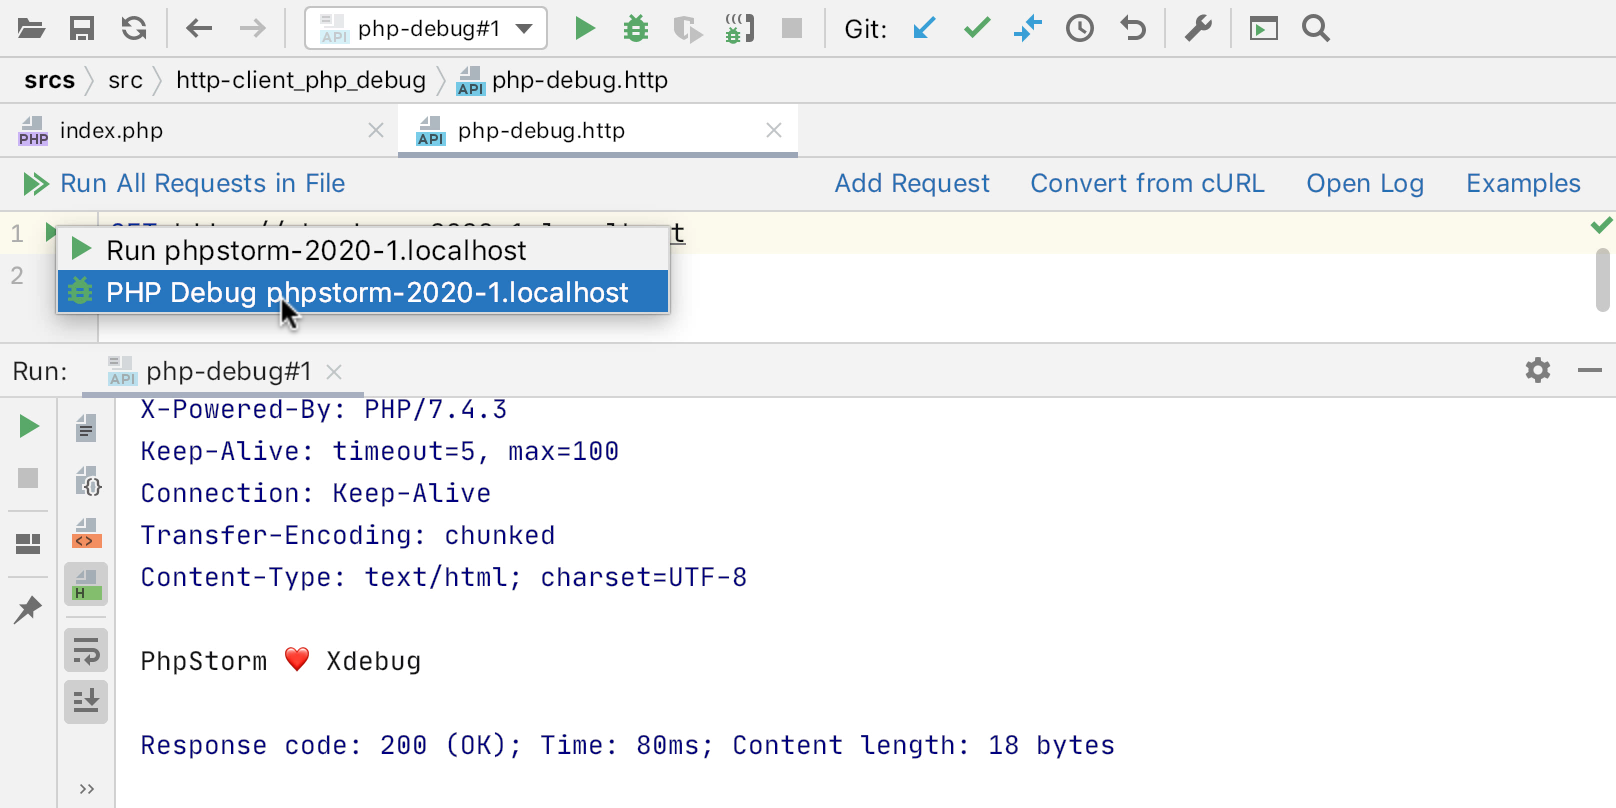 http-client_php_debug